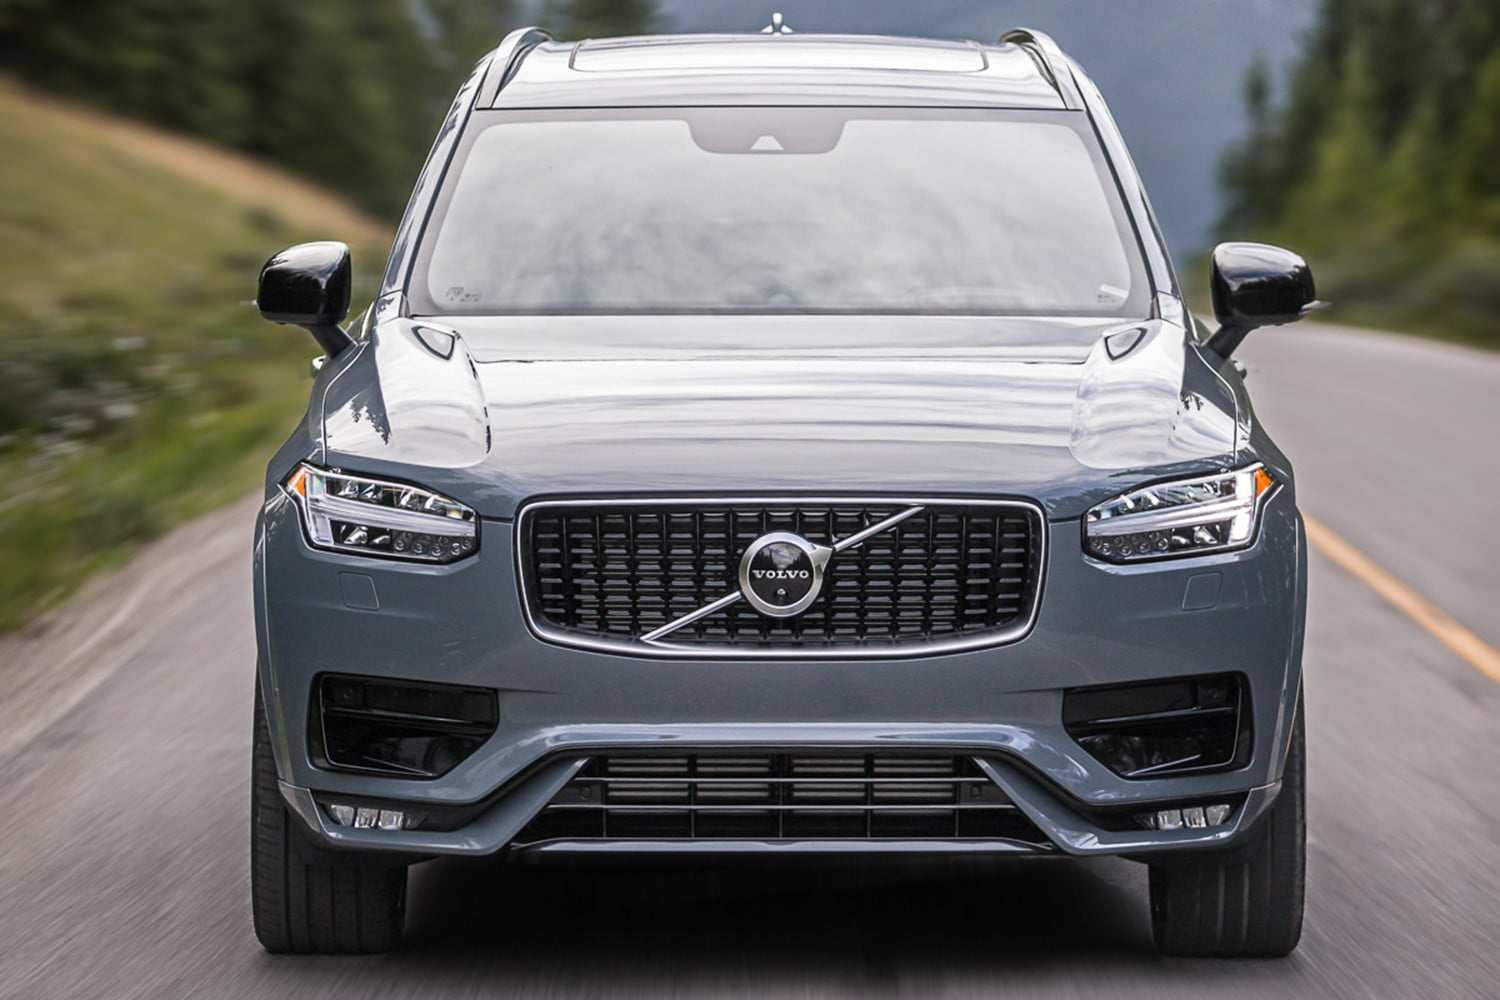 27 All New No One Will Die In A Volvo By 2020 Price